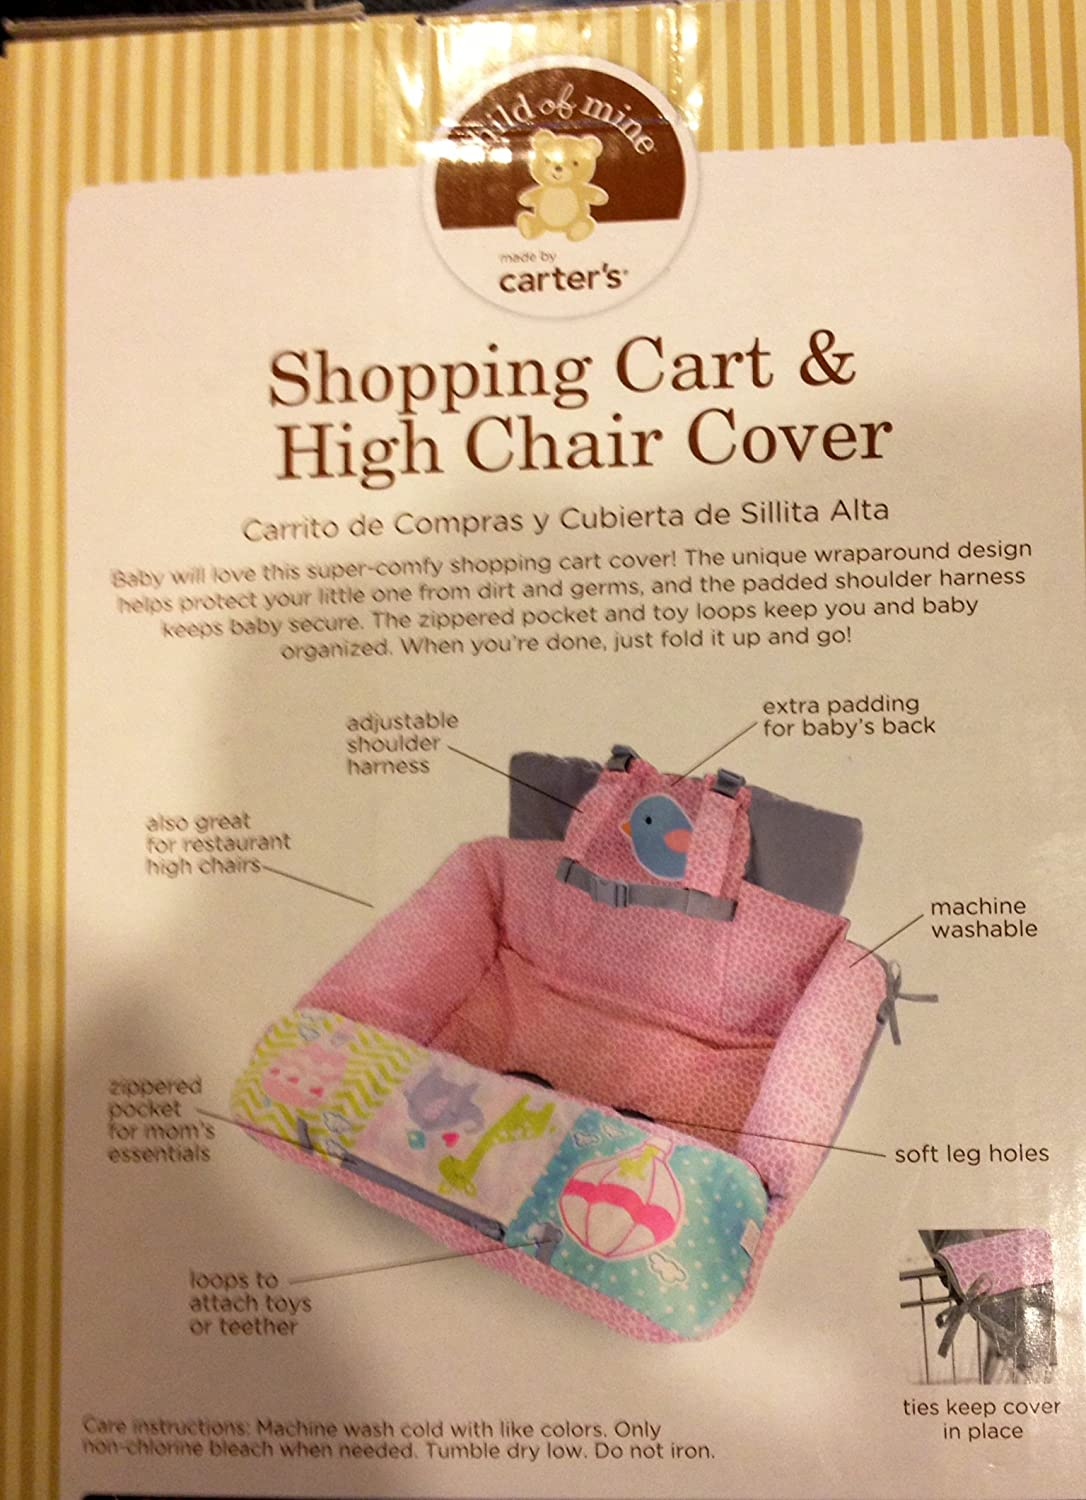 Amazon.com : Carters Child of Mine Shopping Cart and High Chair Cover : Baby